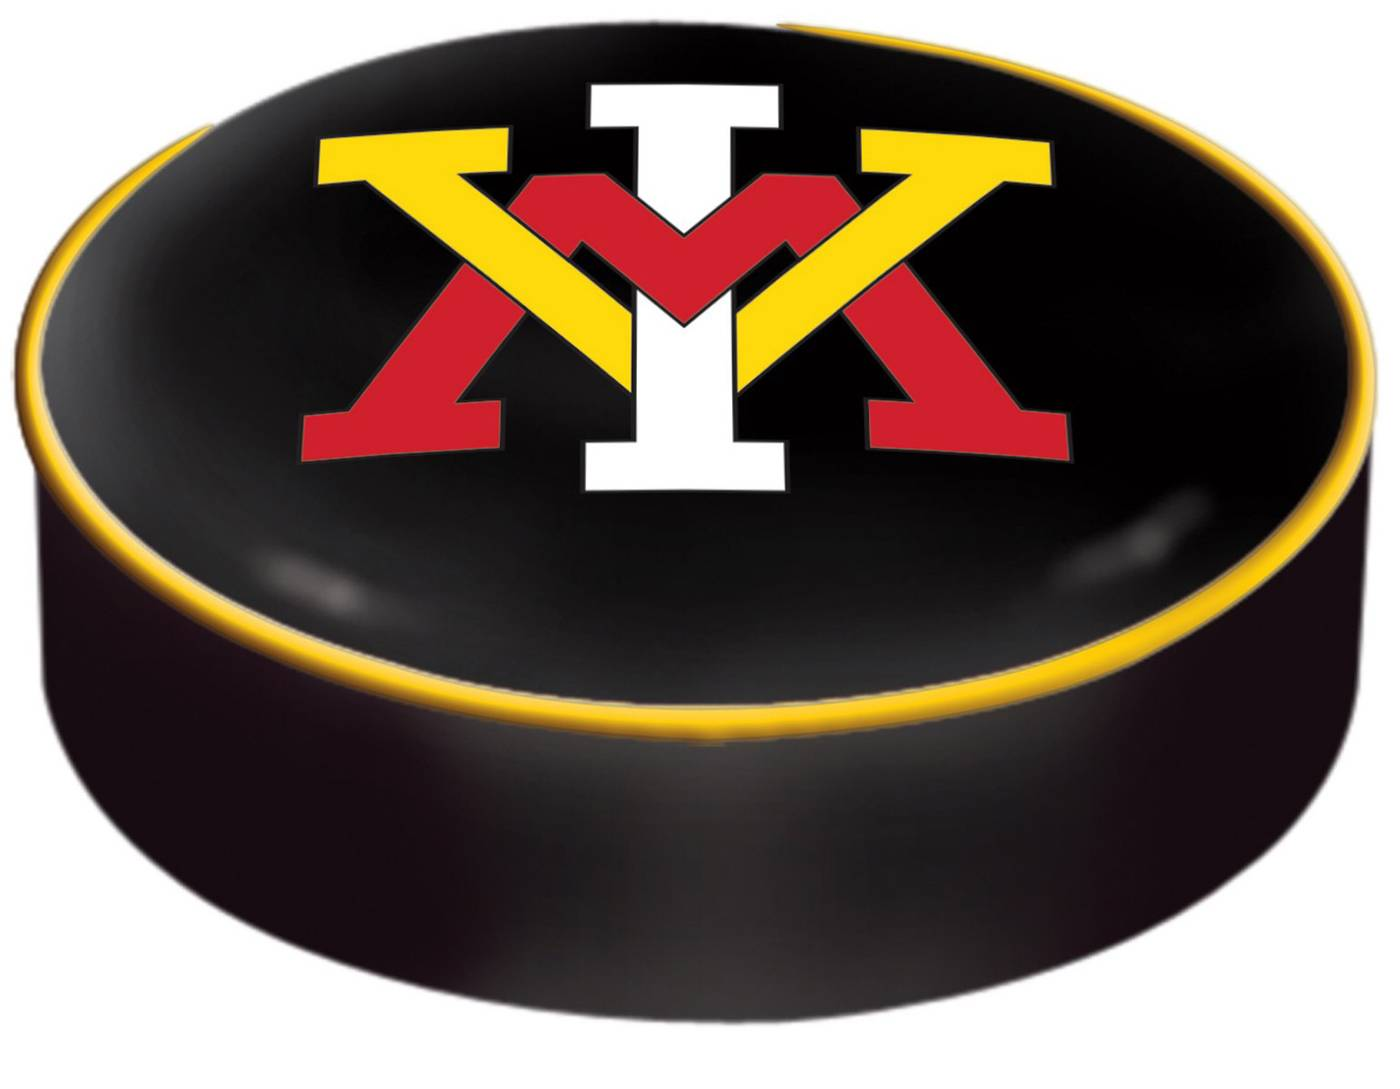 Virginia Military Institute Keydets Bar Stool Seat Cover : virginia military institute keydets bar stool seat covermainProductImageFullSize from www.sportsunlimitedinc.com size 1000 x 833 jpeg 59kB